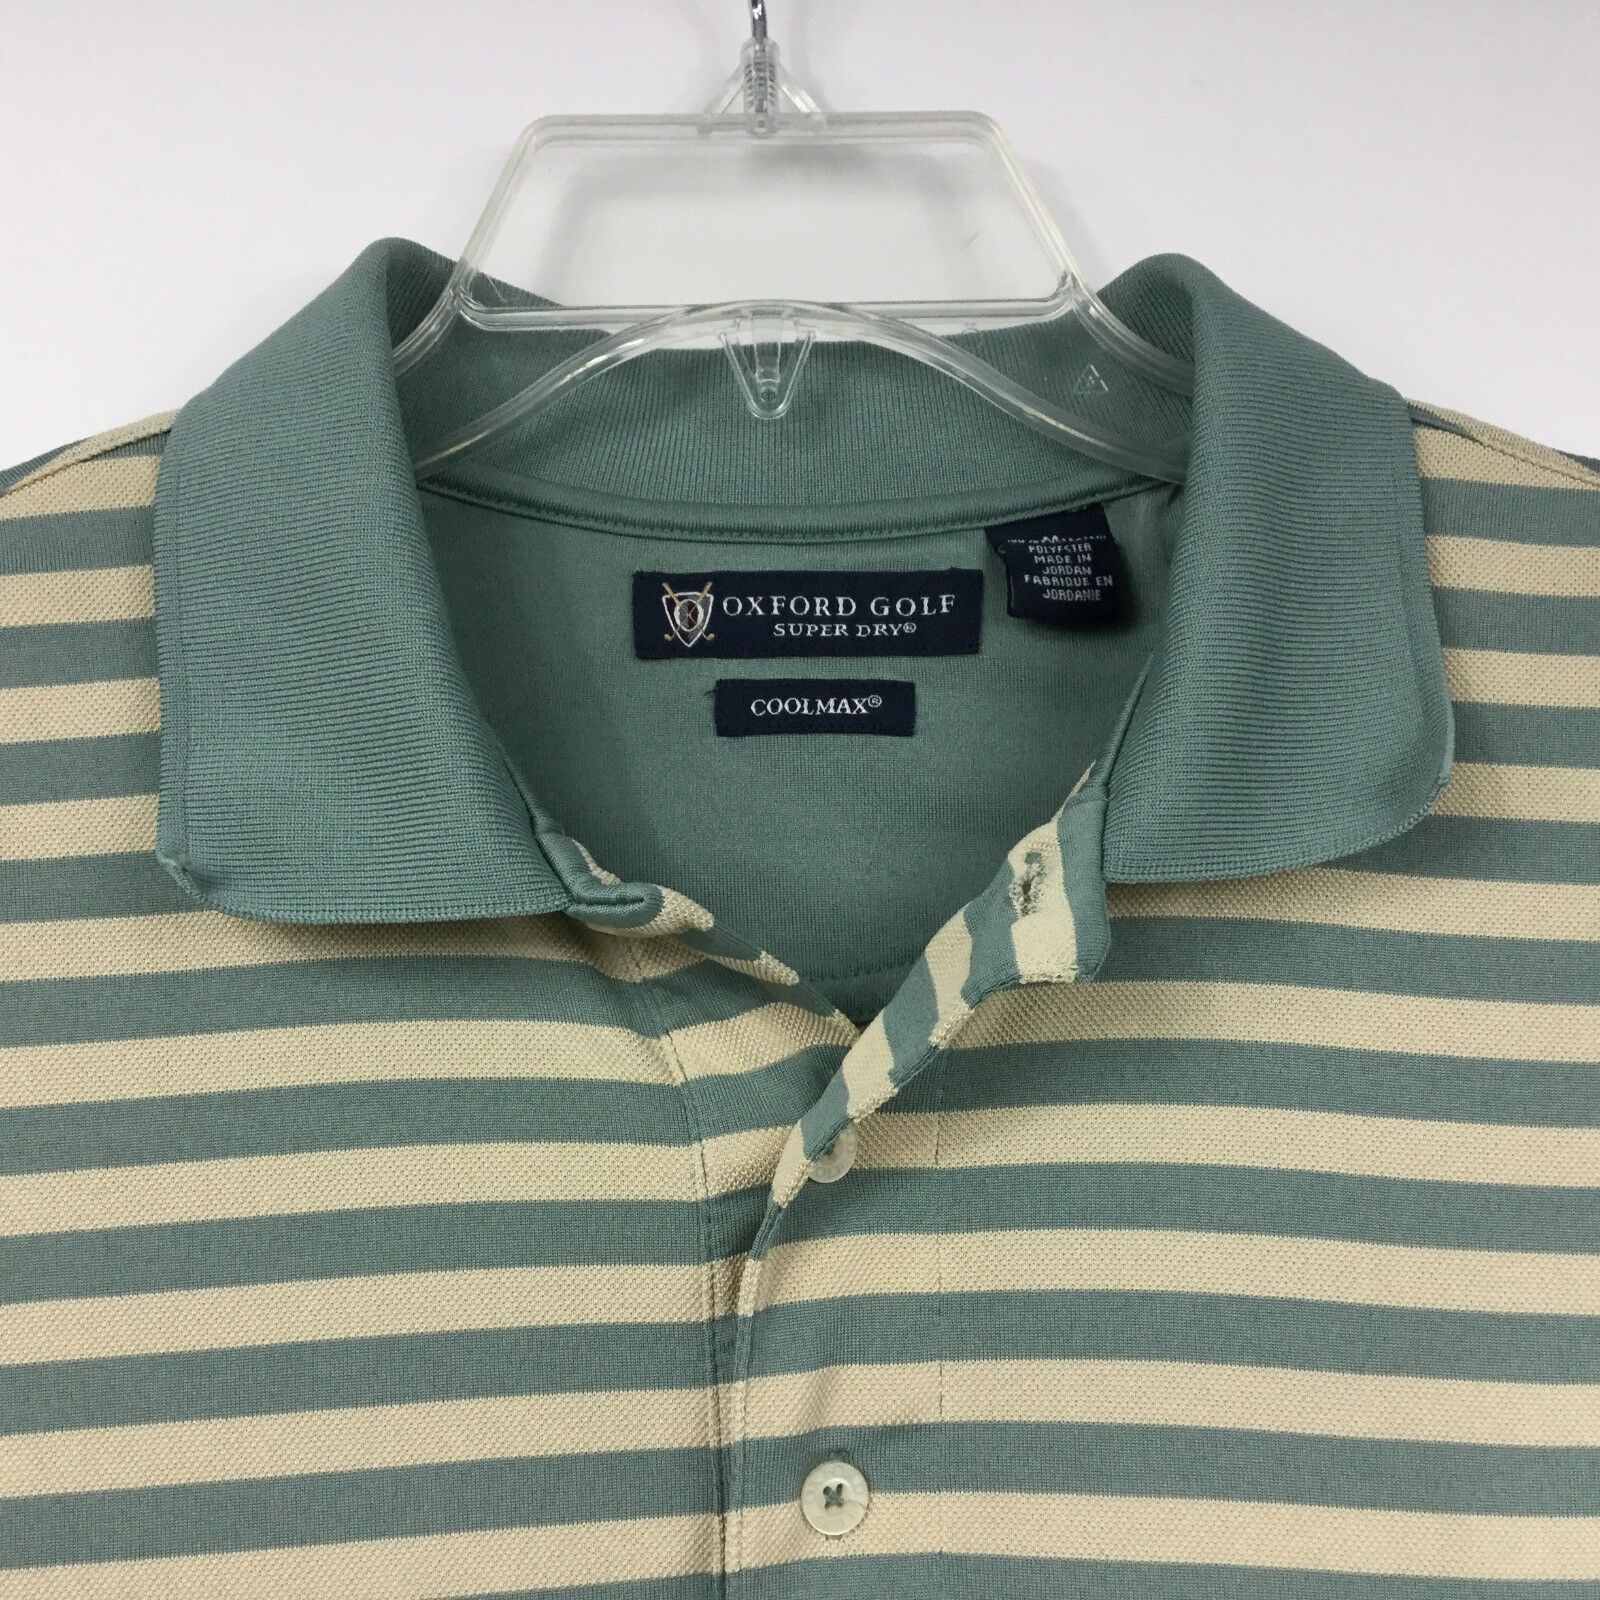 Oxford Golf Mens Shirt Cool Max Polo Style Short Sleeve Super Dry Size M  image 3